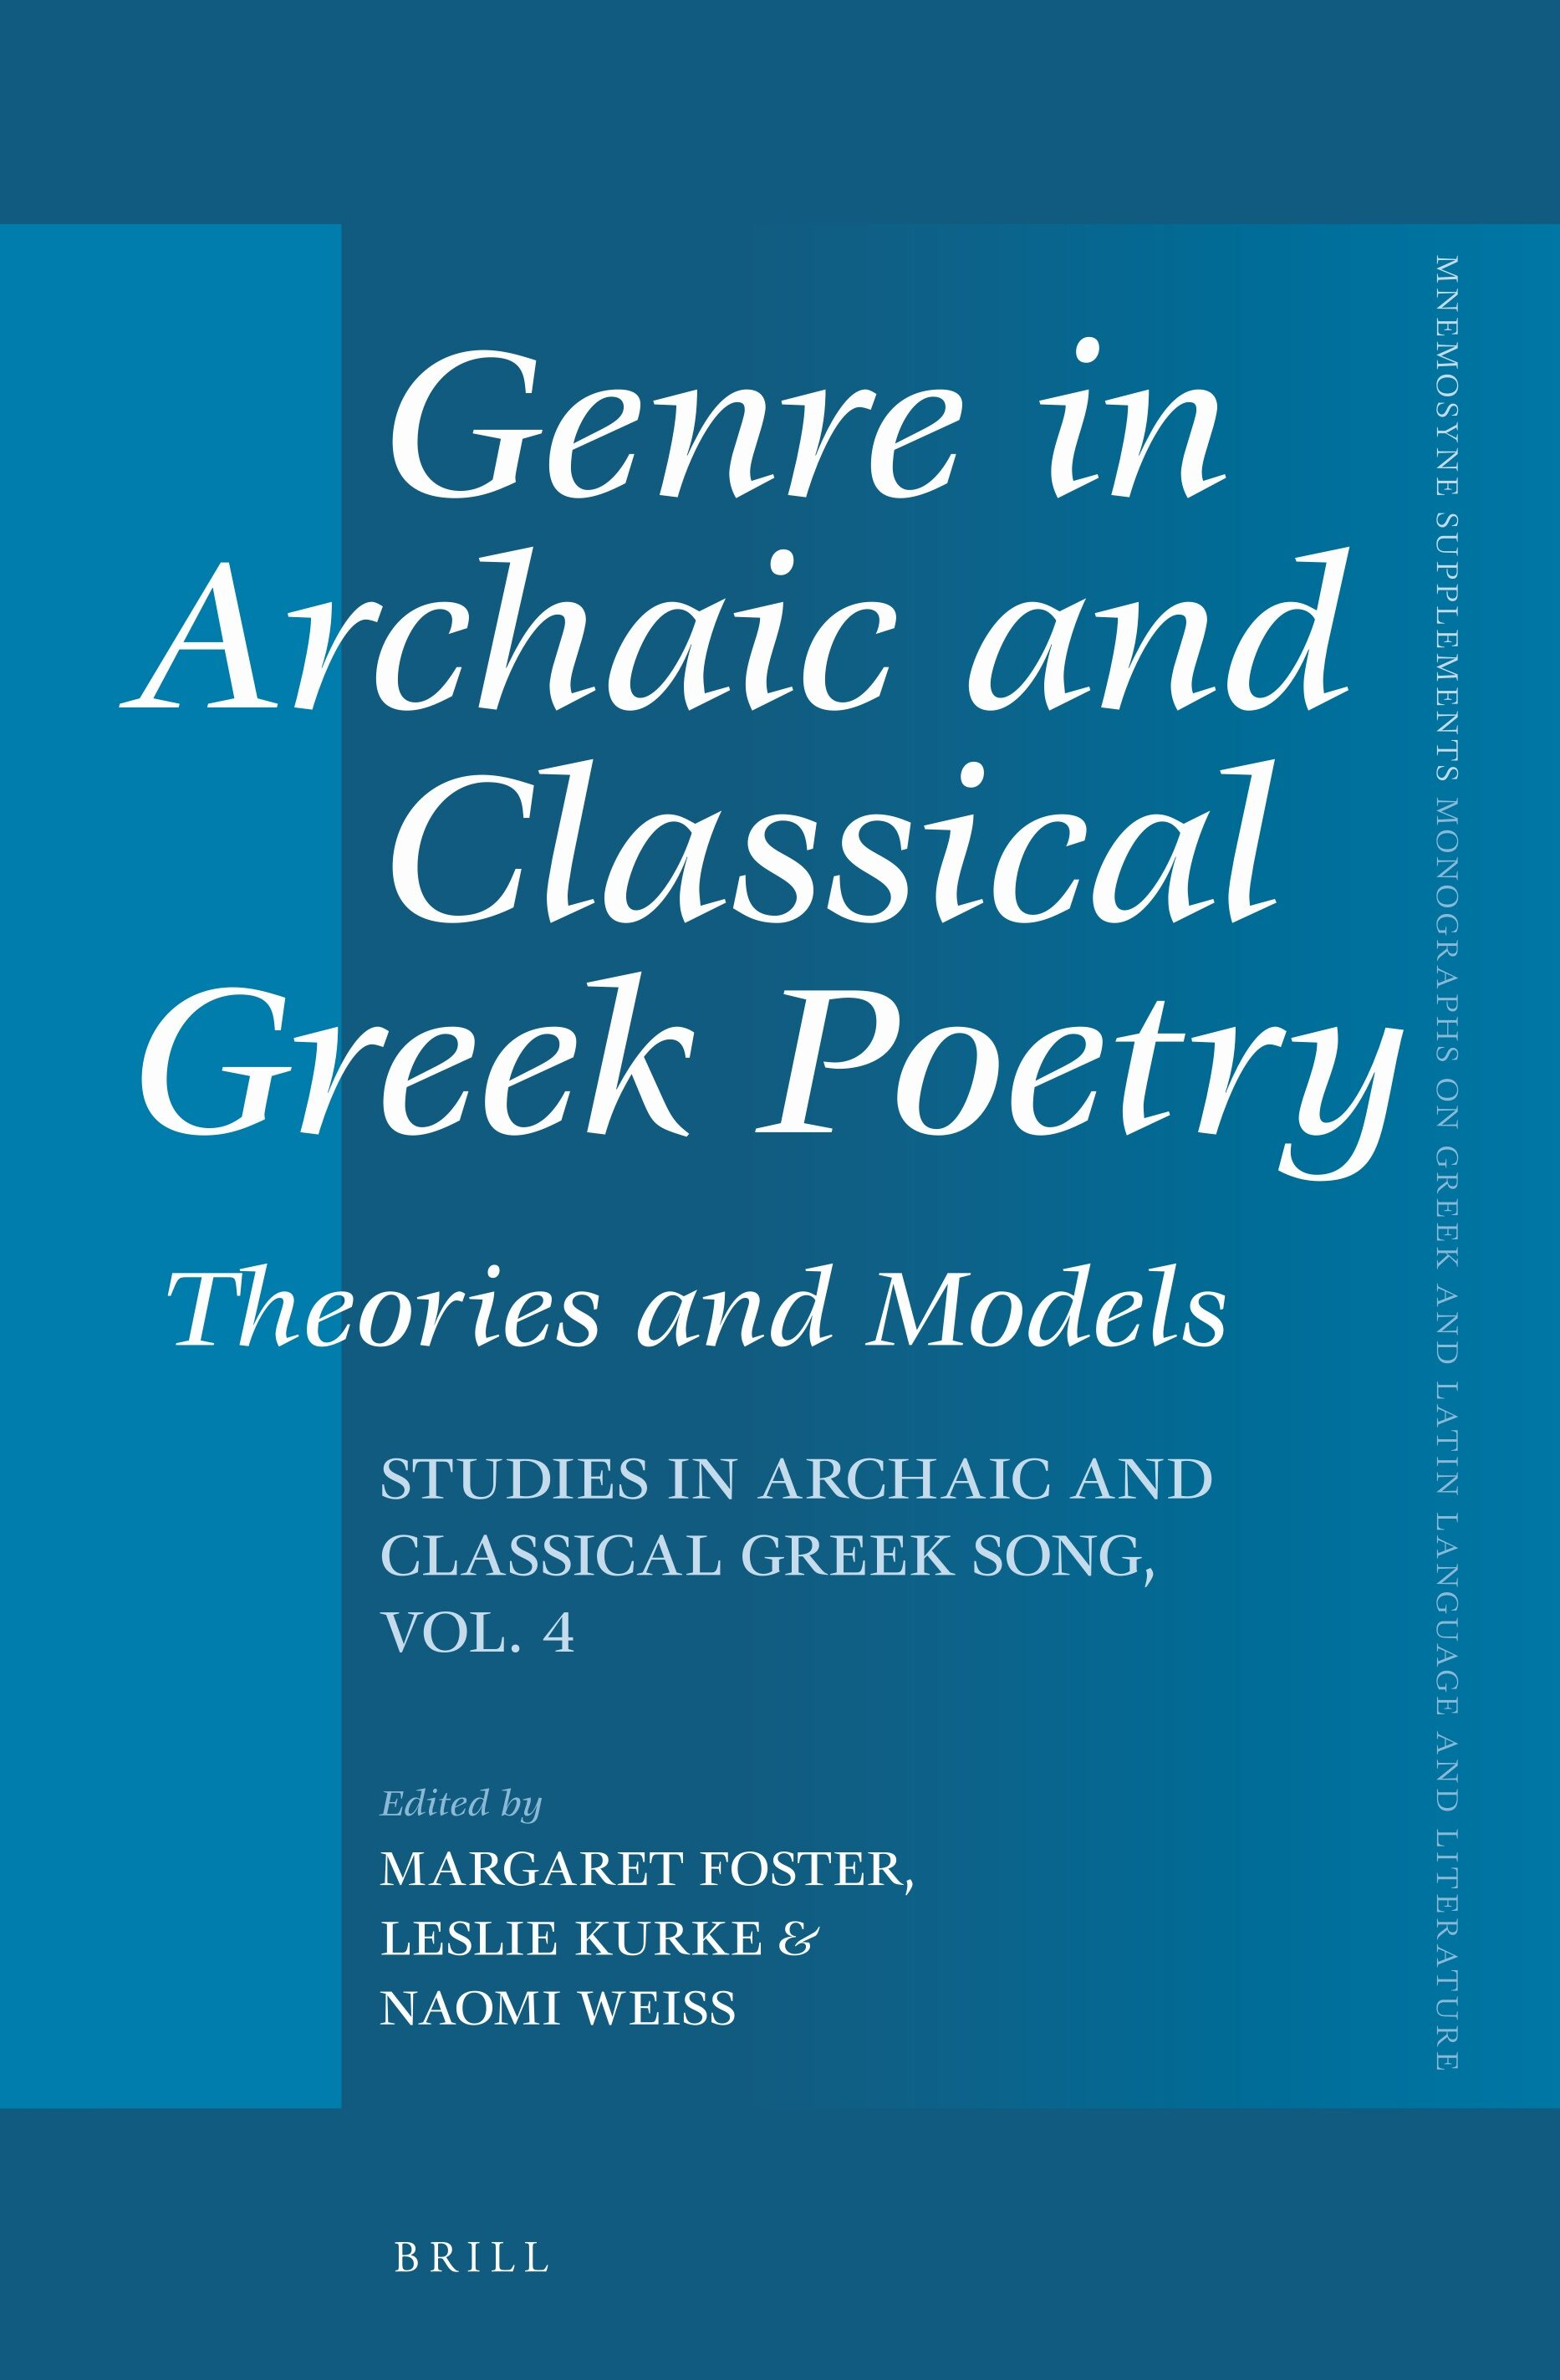 Bibliography In Genre In Archaic And Classical Greek Poetry